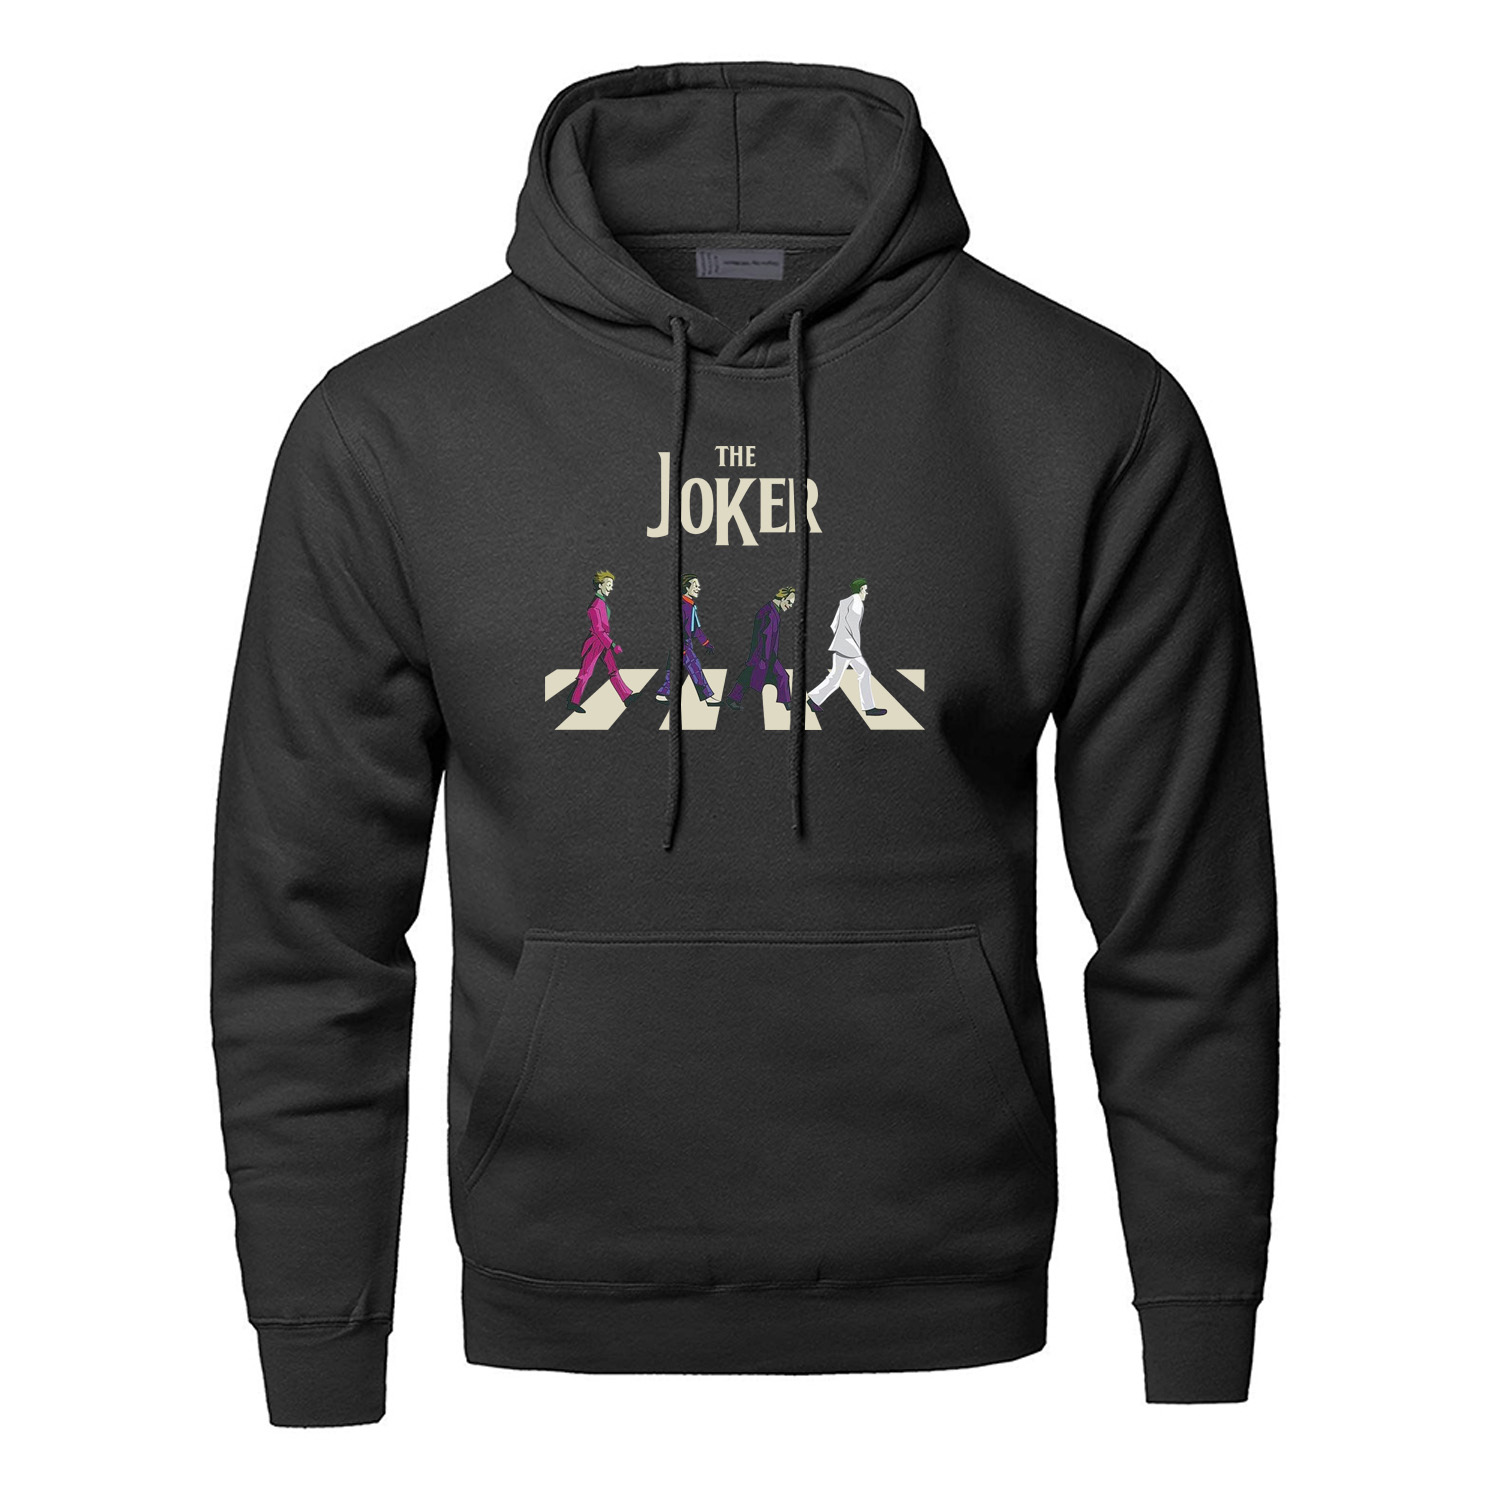 The Joker Hoodies Men Sweatshirts Villain Eric Border Hooded Sweatshirt Winter Autumn Fleece Streetwear Jack Napier Sportswear